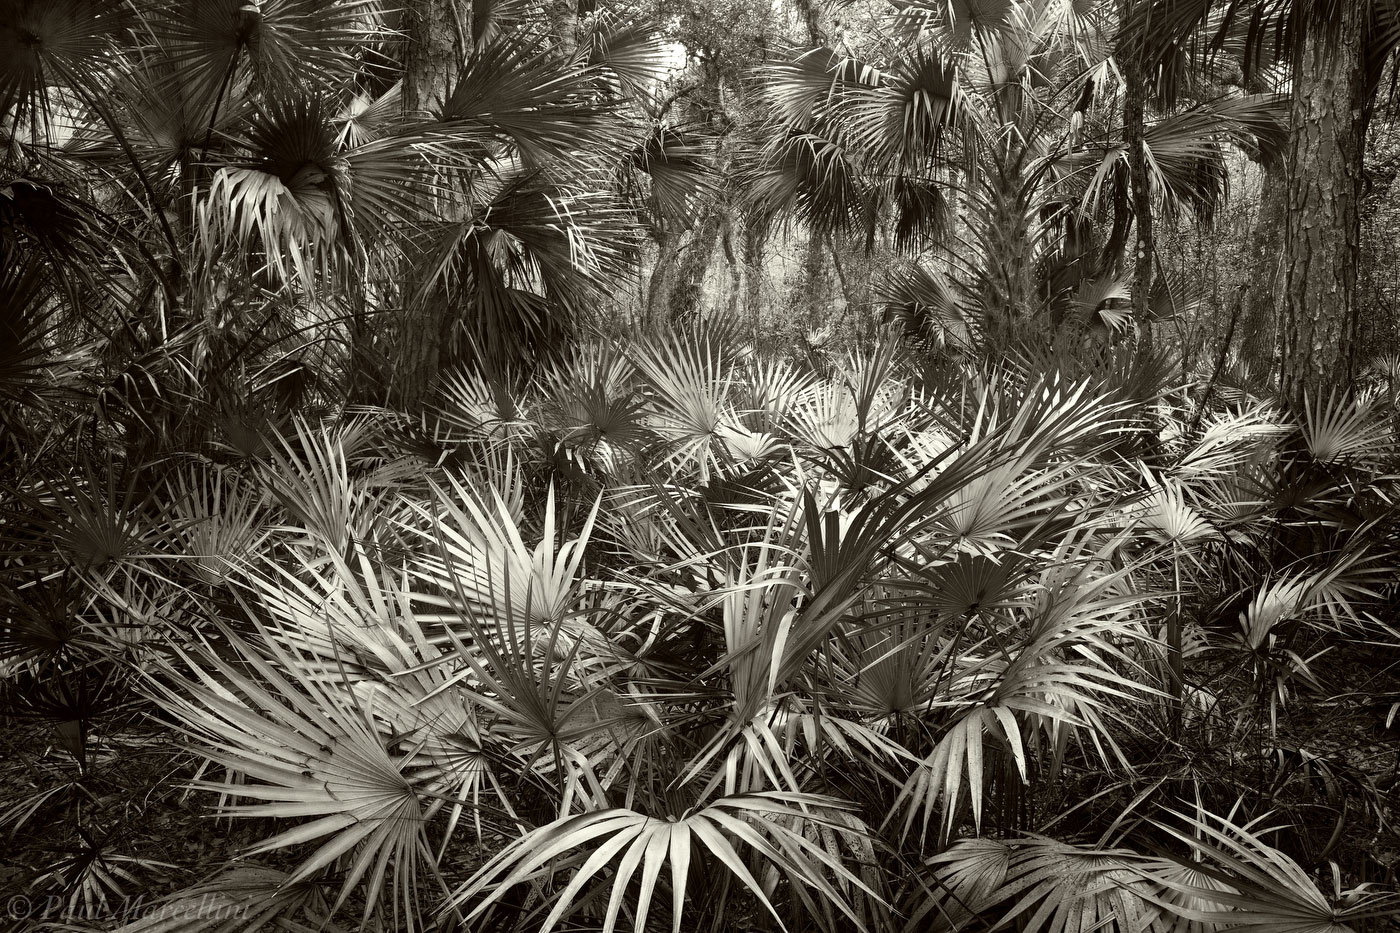 Saw Palmetto, Serenoa repens, Cabbage Palms, Sabal palmetto, fisheating, creek wildlife management, Fisheating Creek, florida, south florida, nature, photography, photo